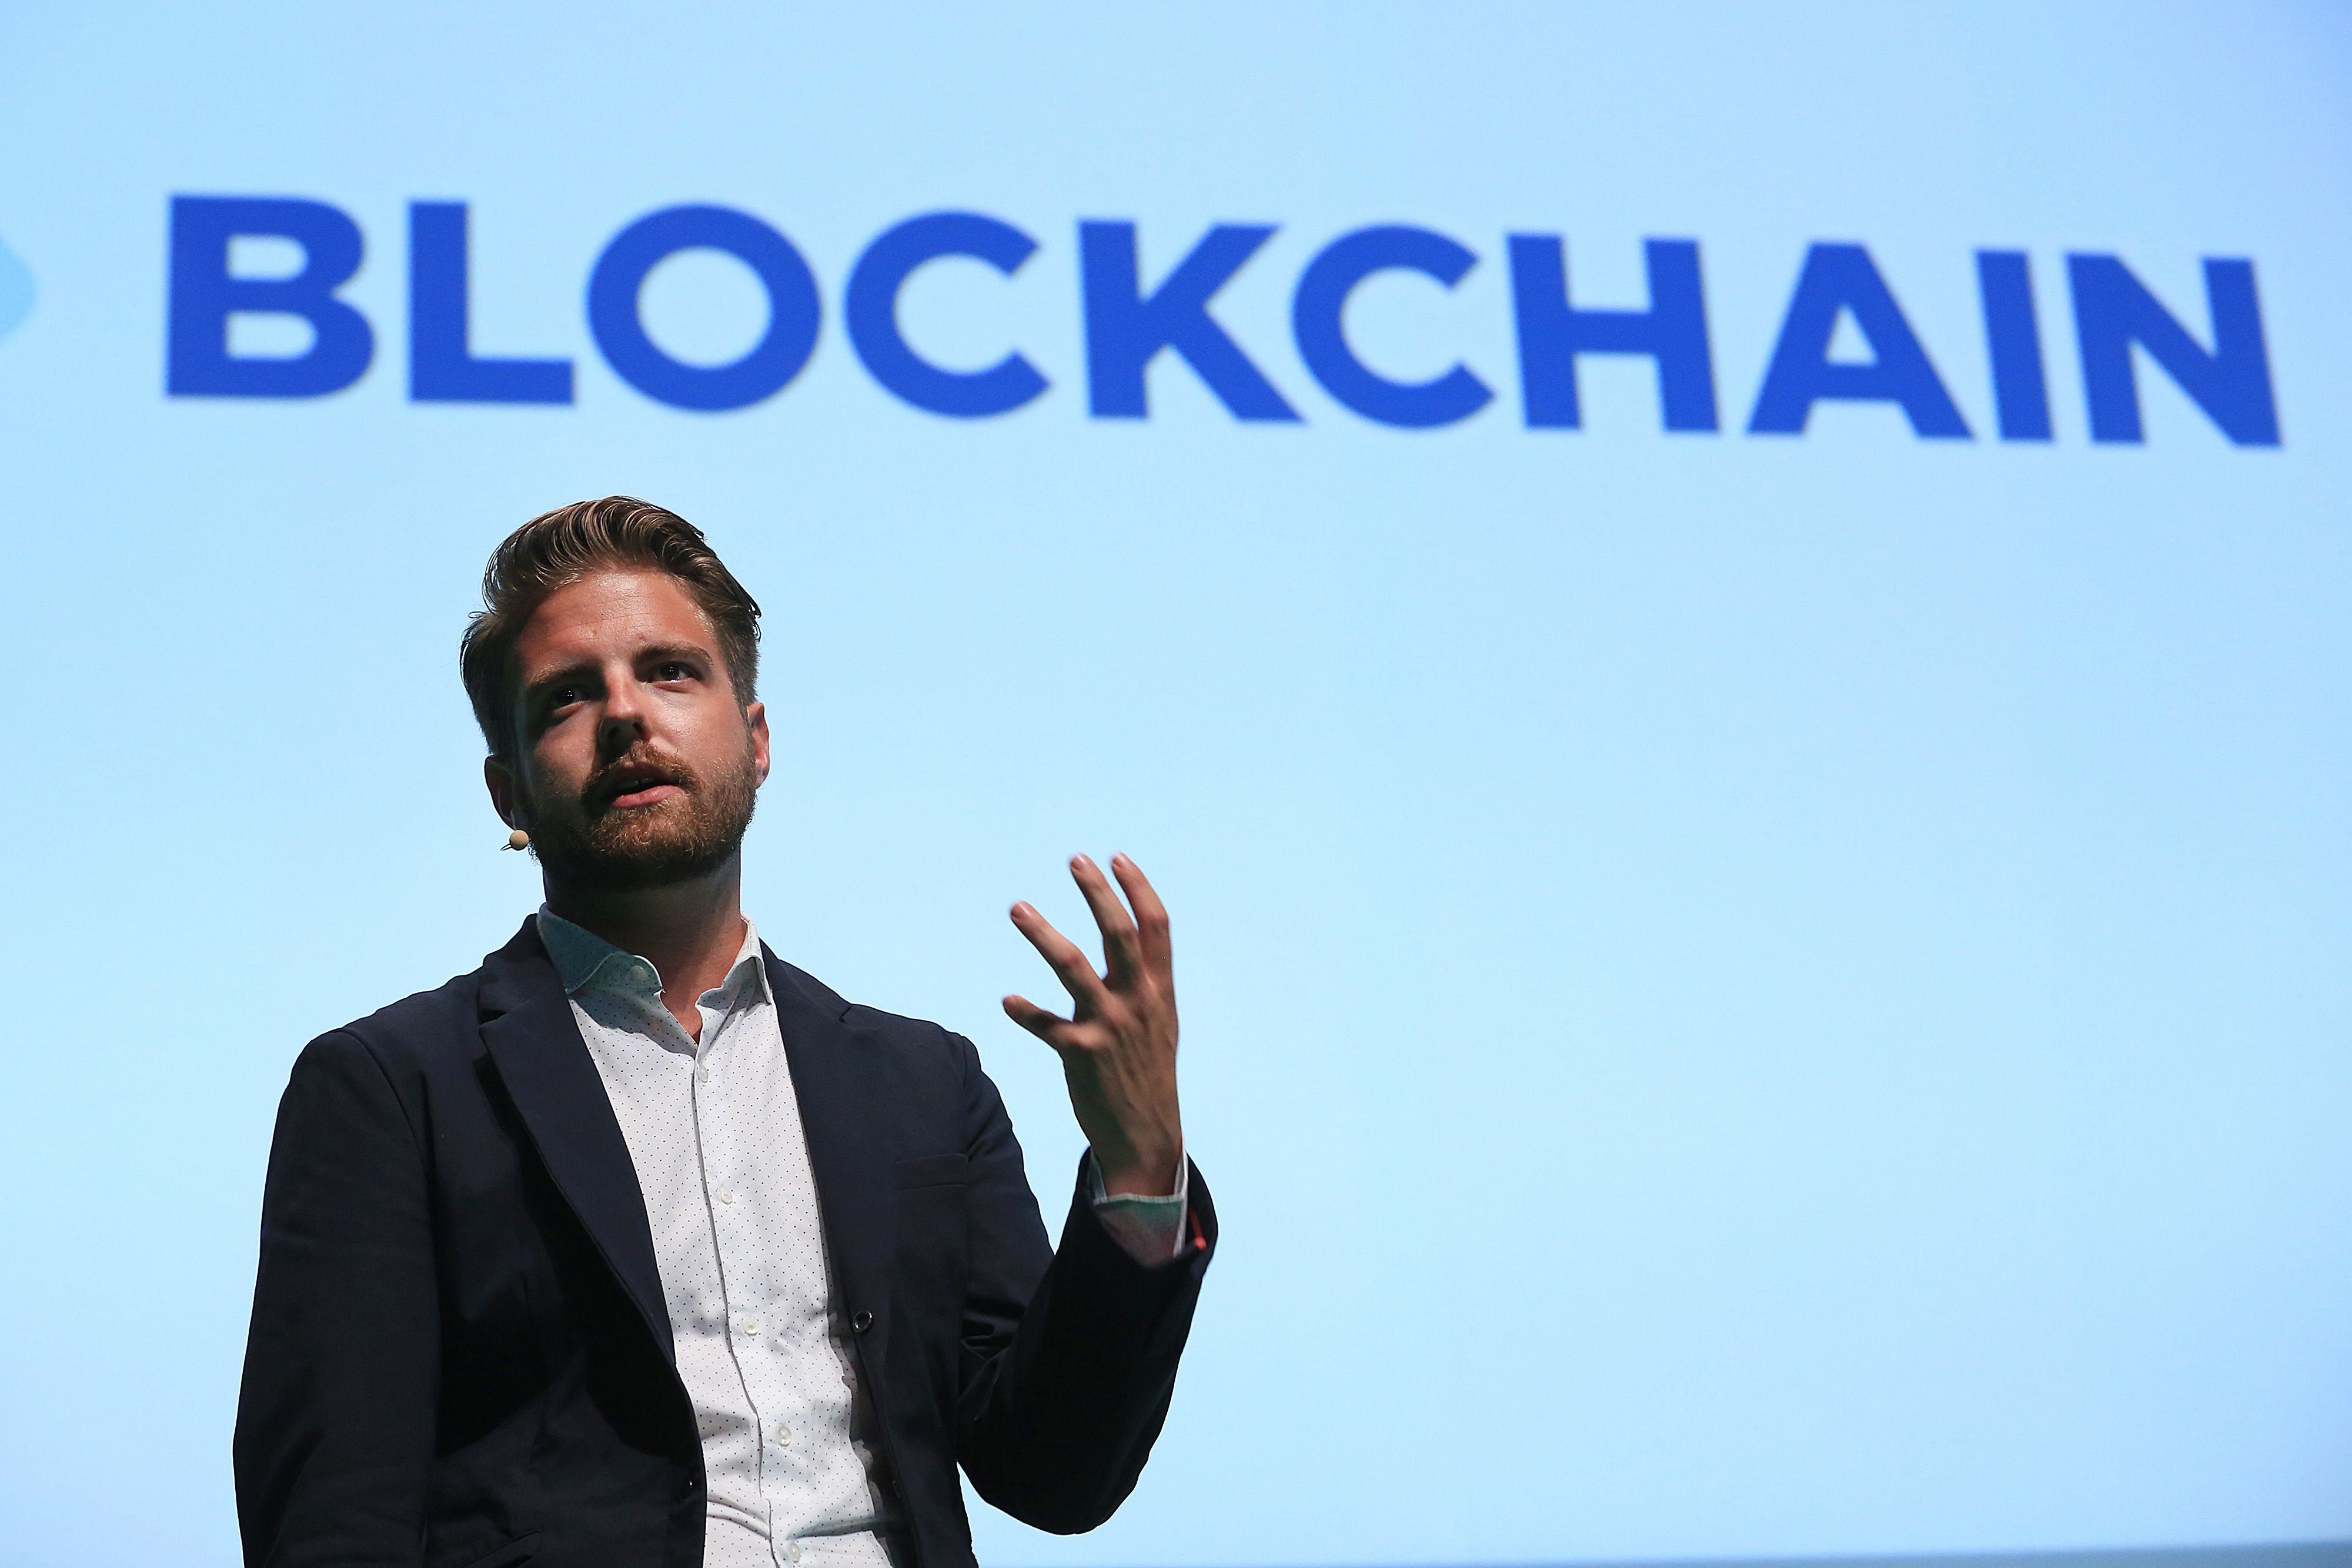 Bransonbacked cryptocurrency firm launches a superfast